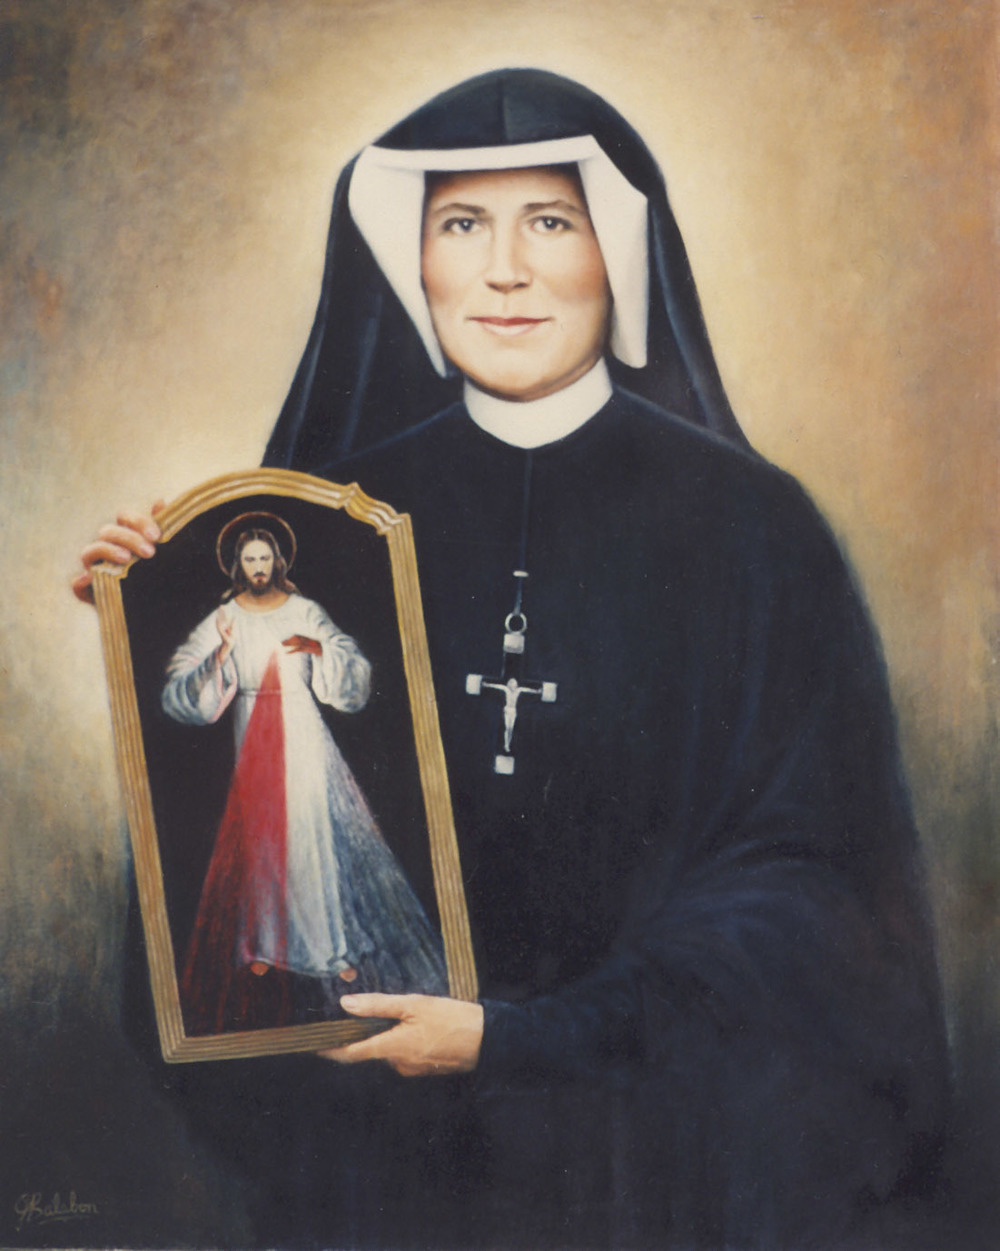 photo St. Faustina.jpg